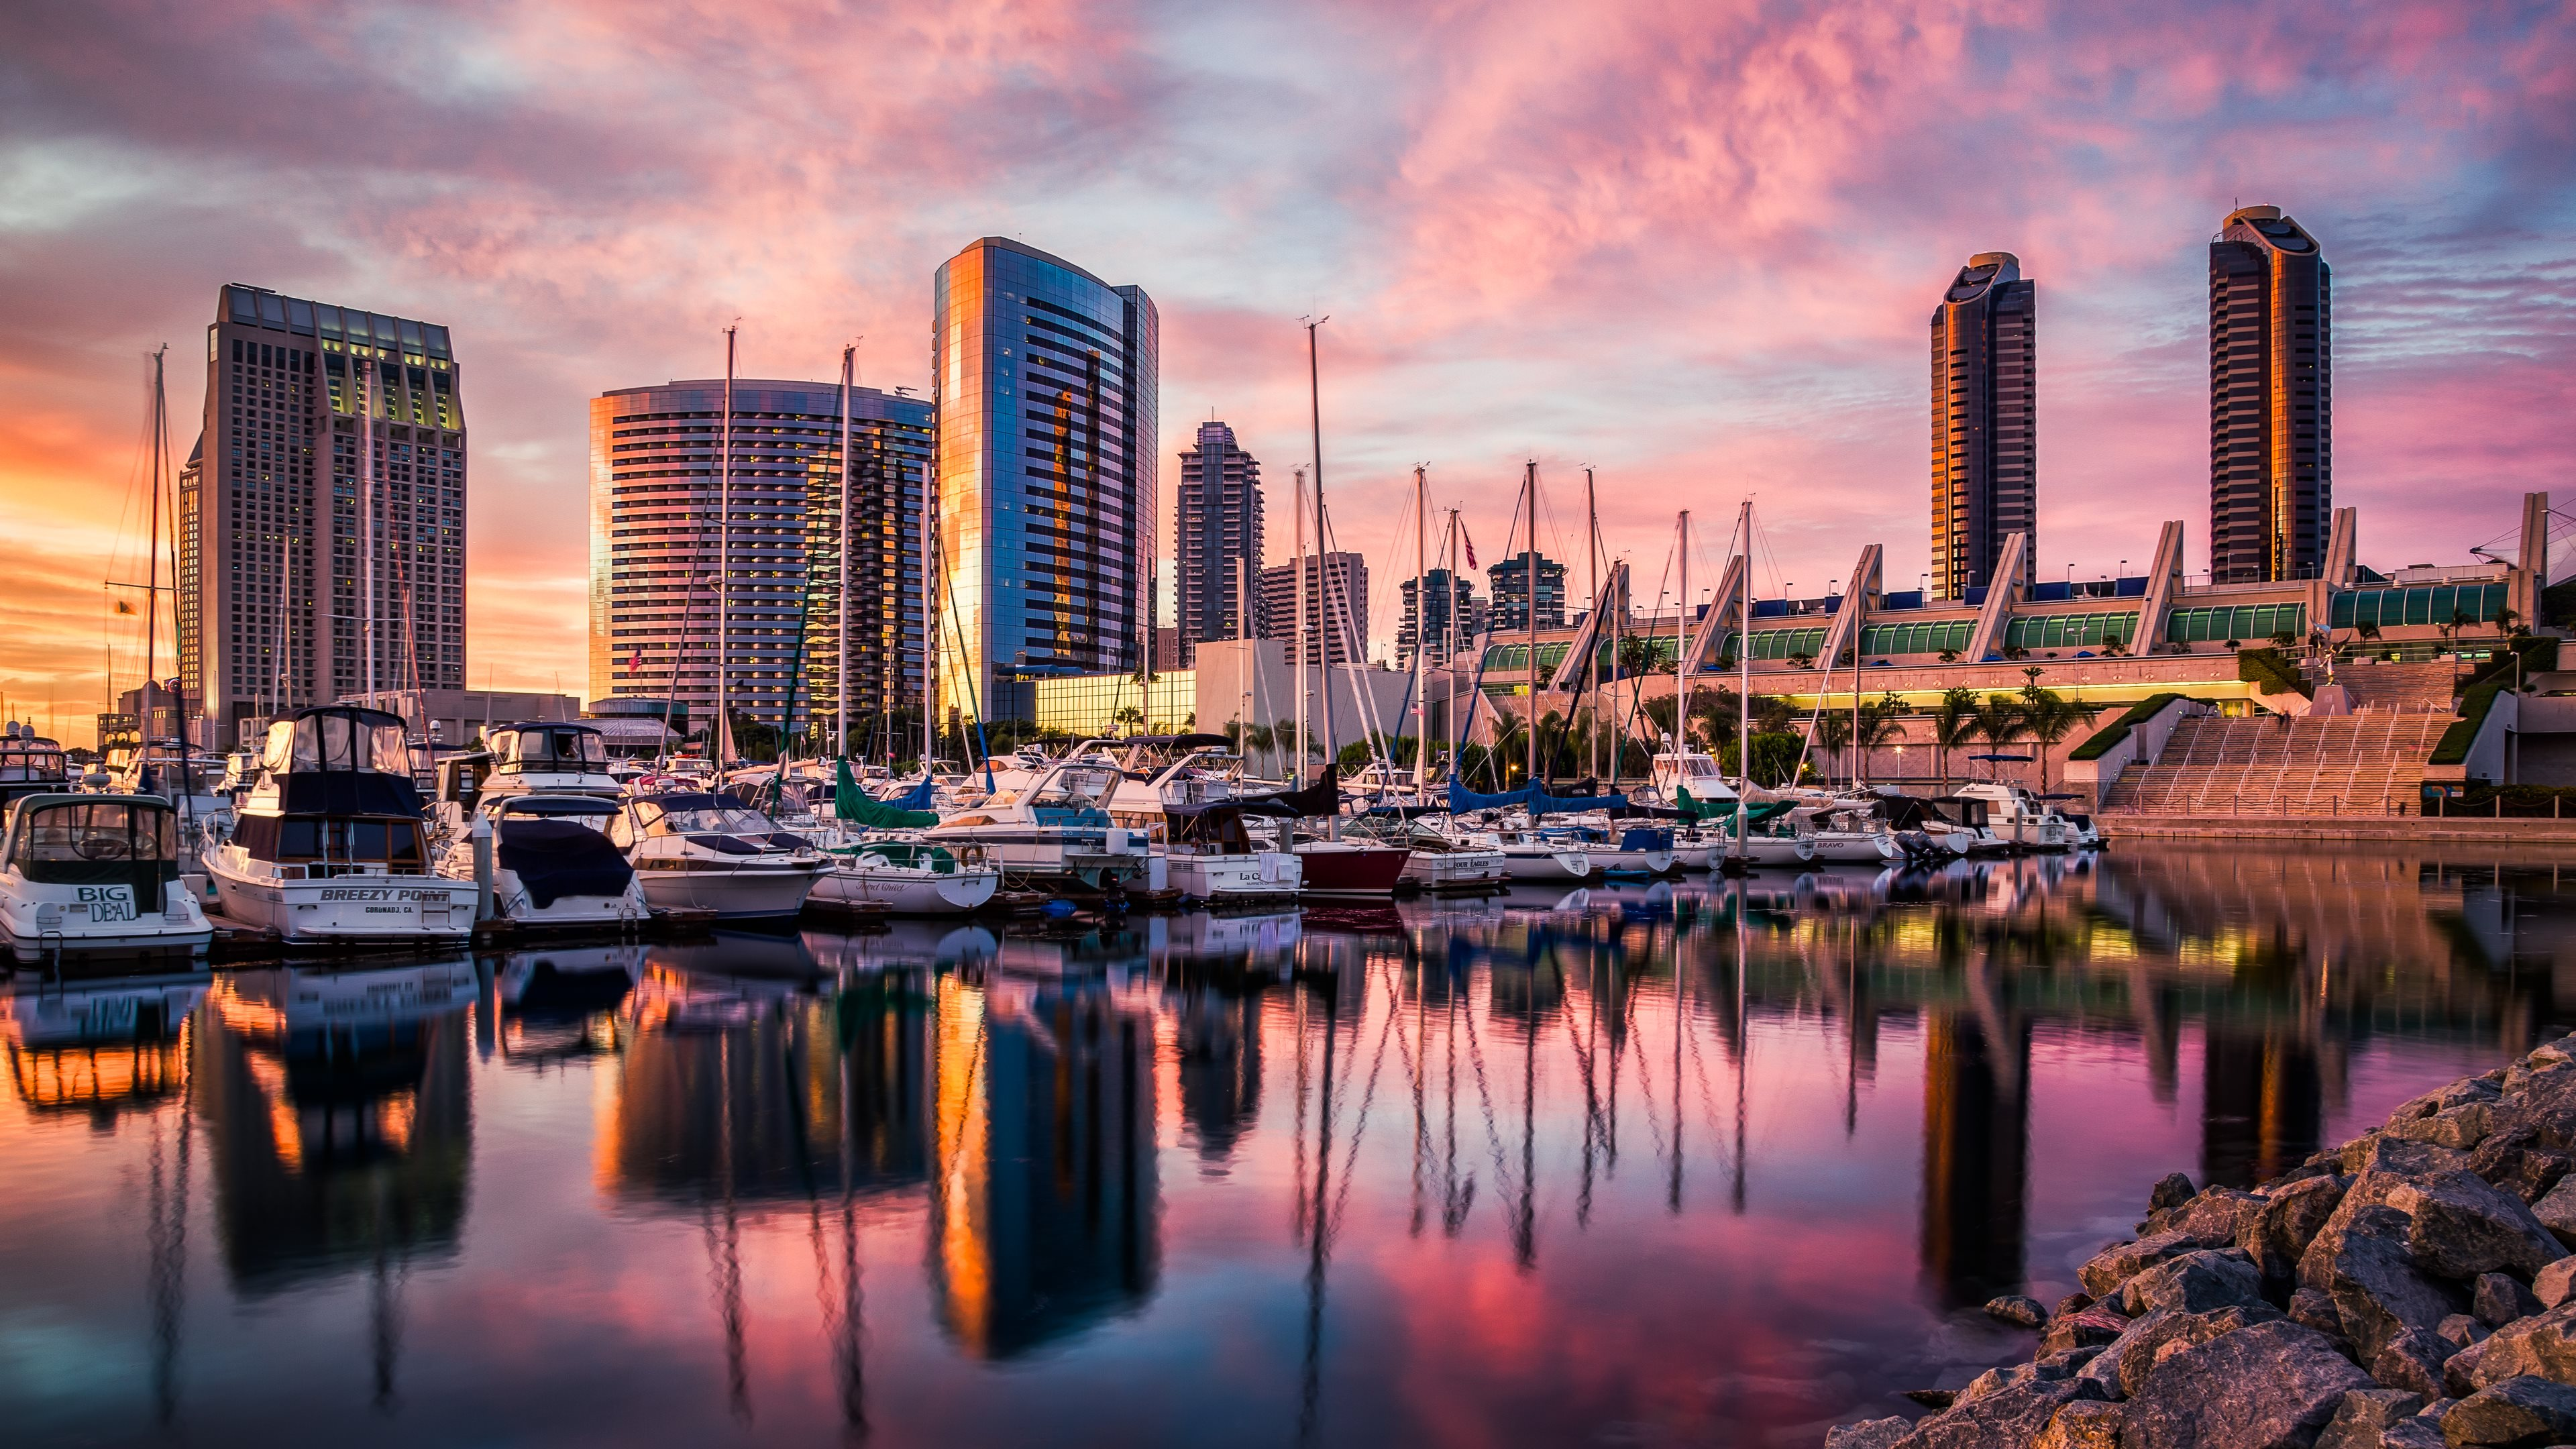 San Diego Wallpapers - Wallpaper Cave